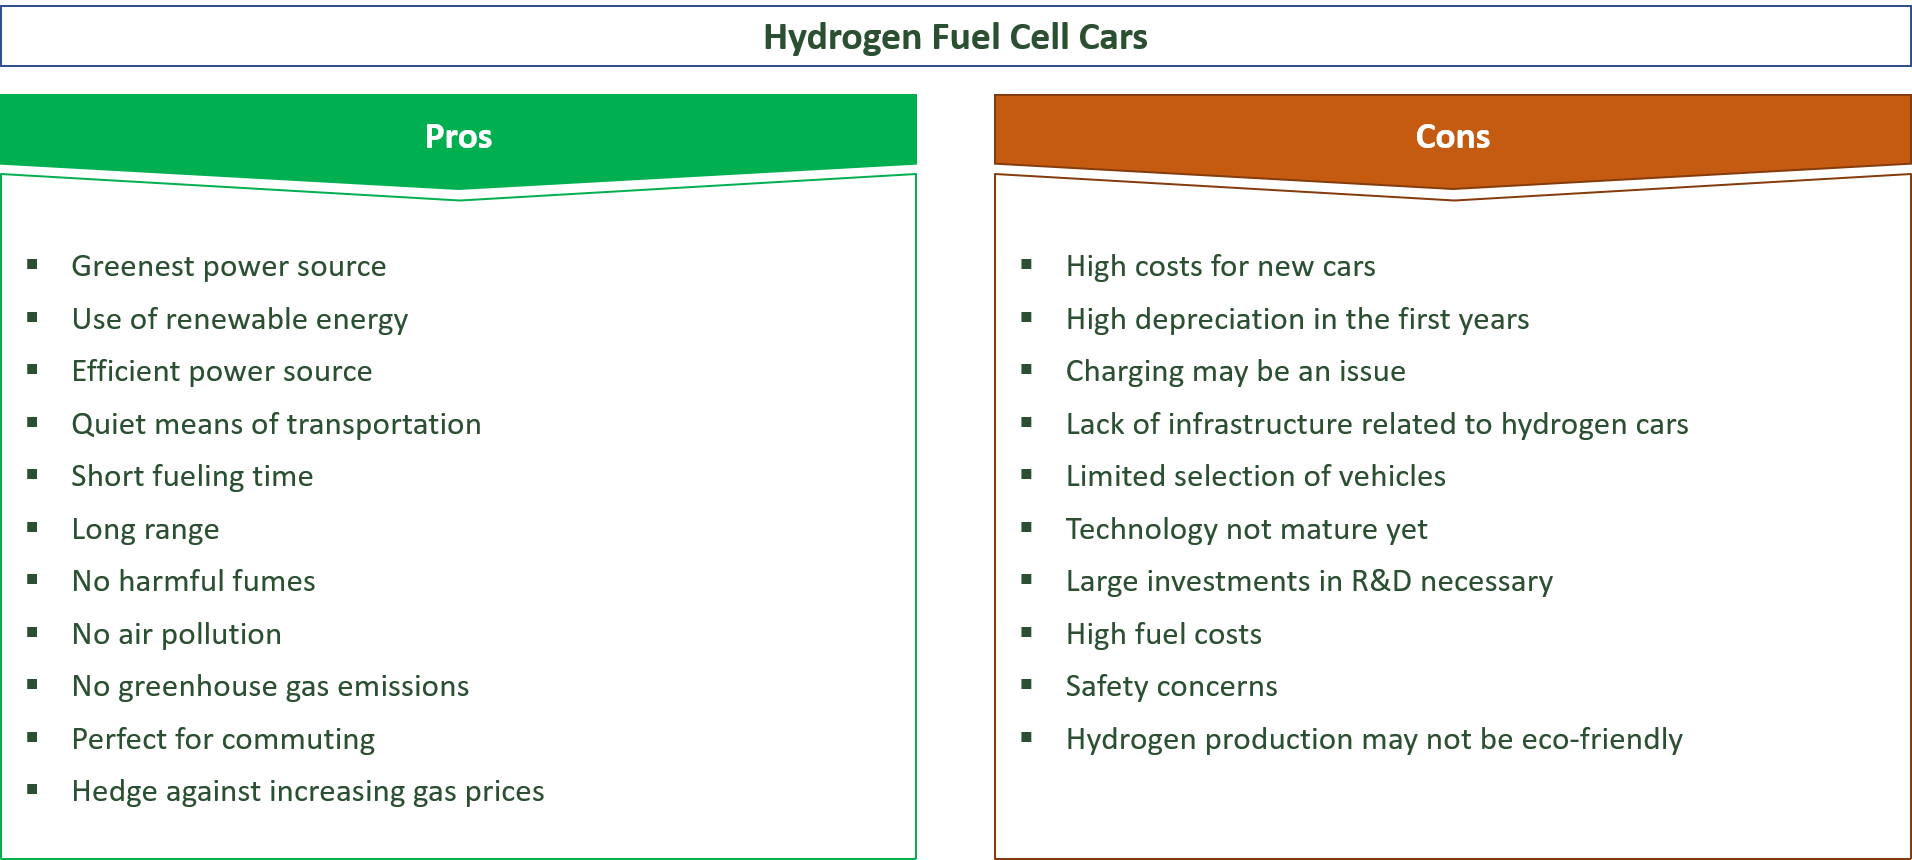 the advantages and downsides of hydrogen fuel cell cars